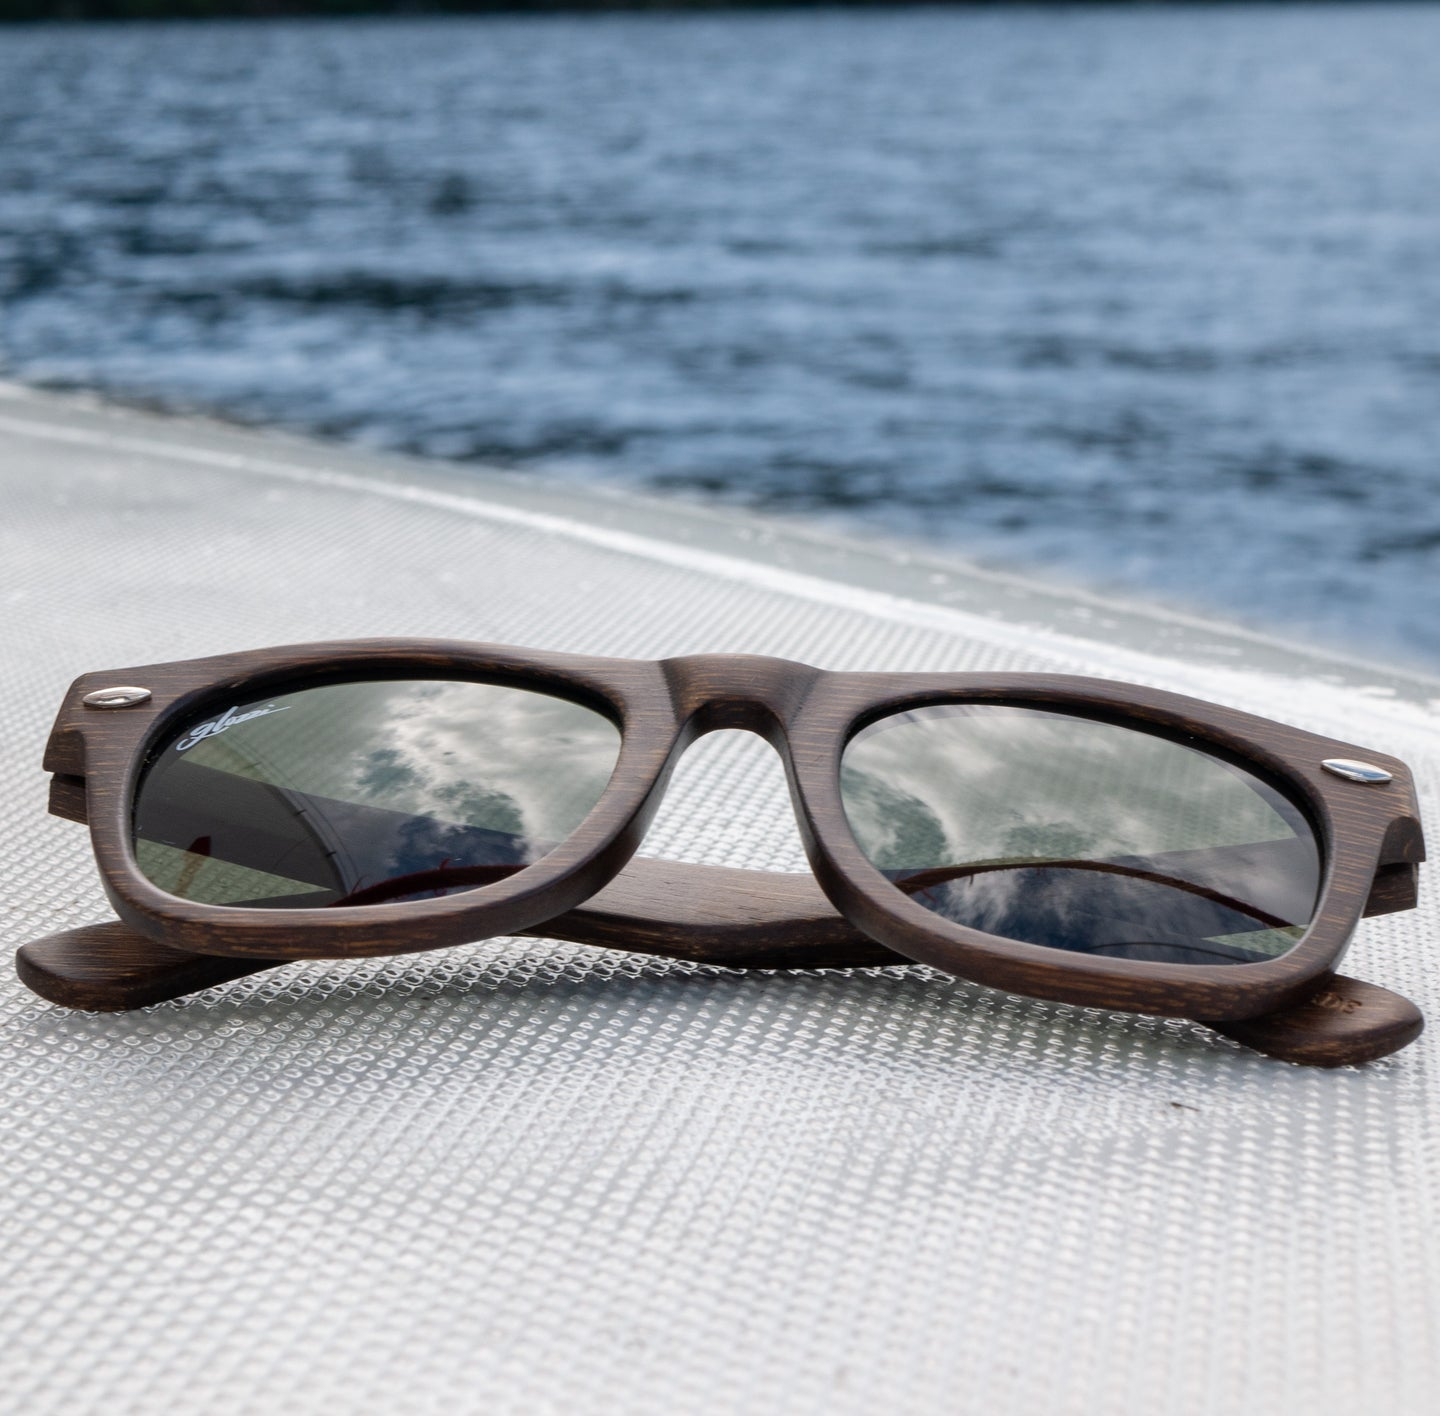 Bambus-Sonnenbrille - The Adventurer | glozzi